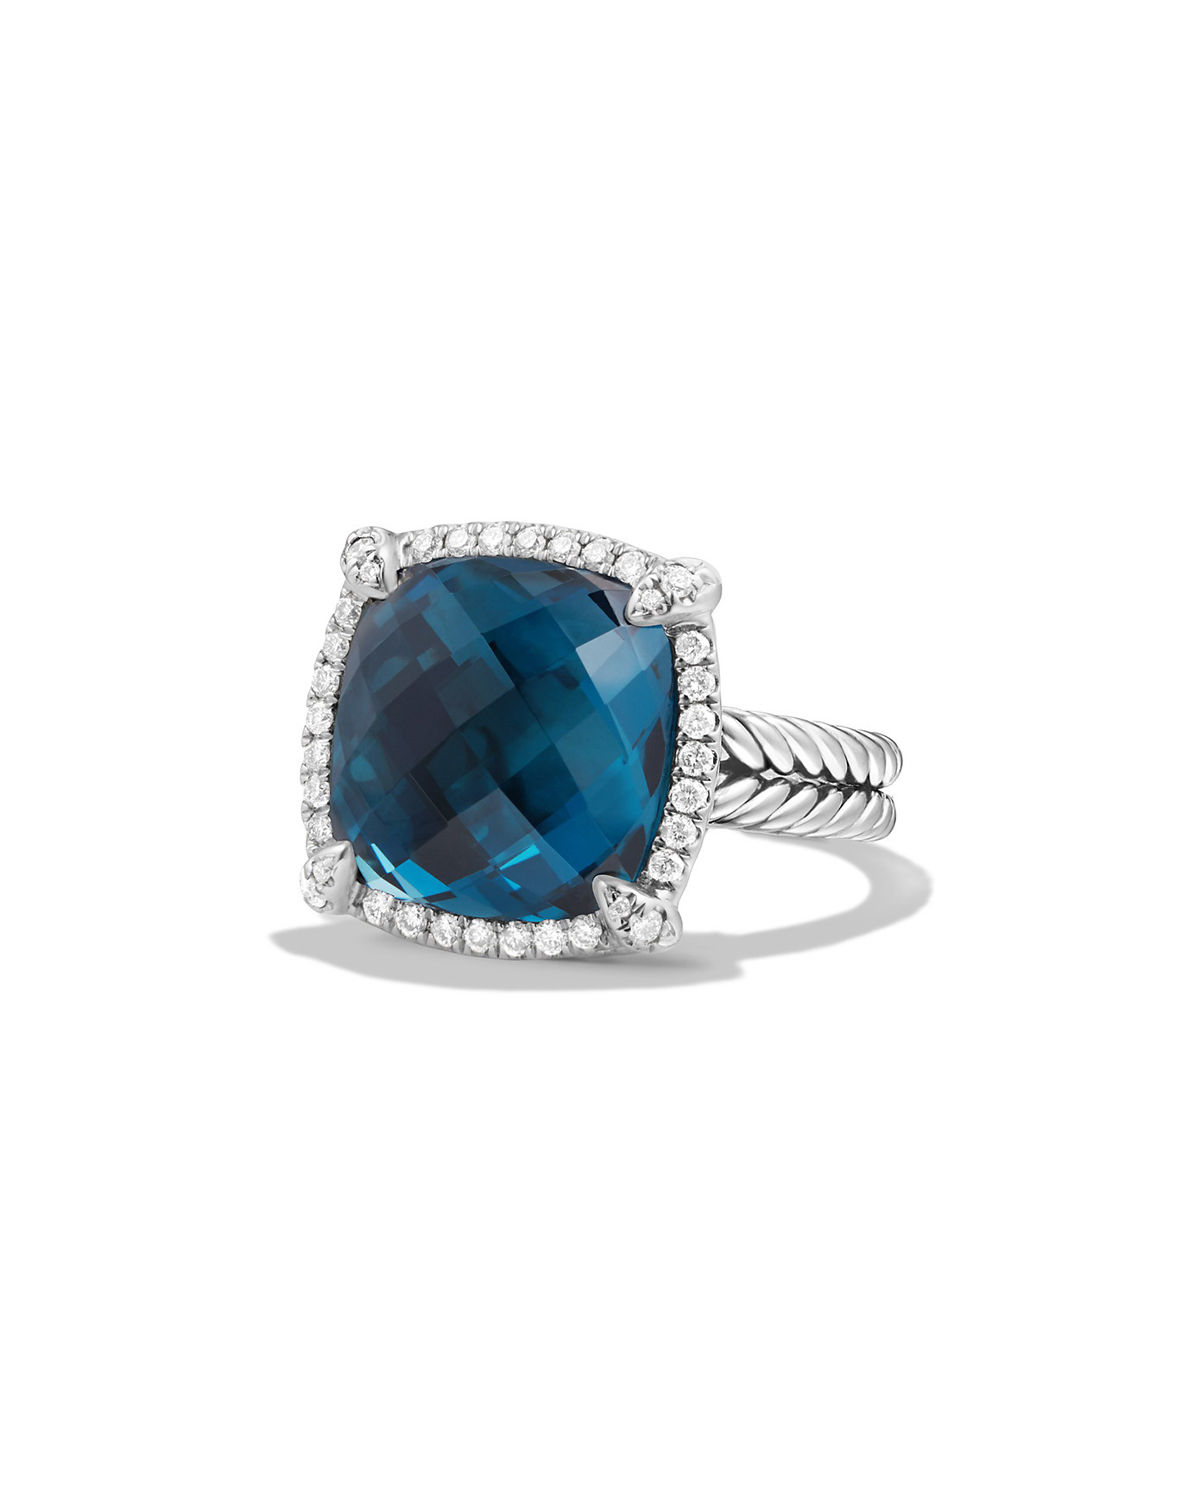 14mm Chatelaine Ring with Diamonds